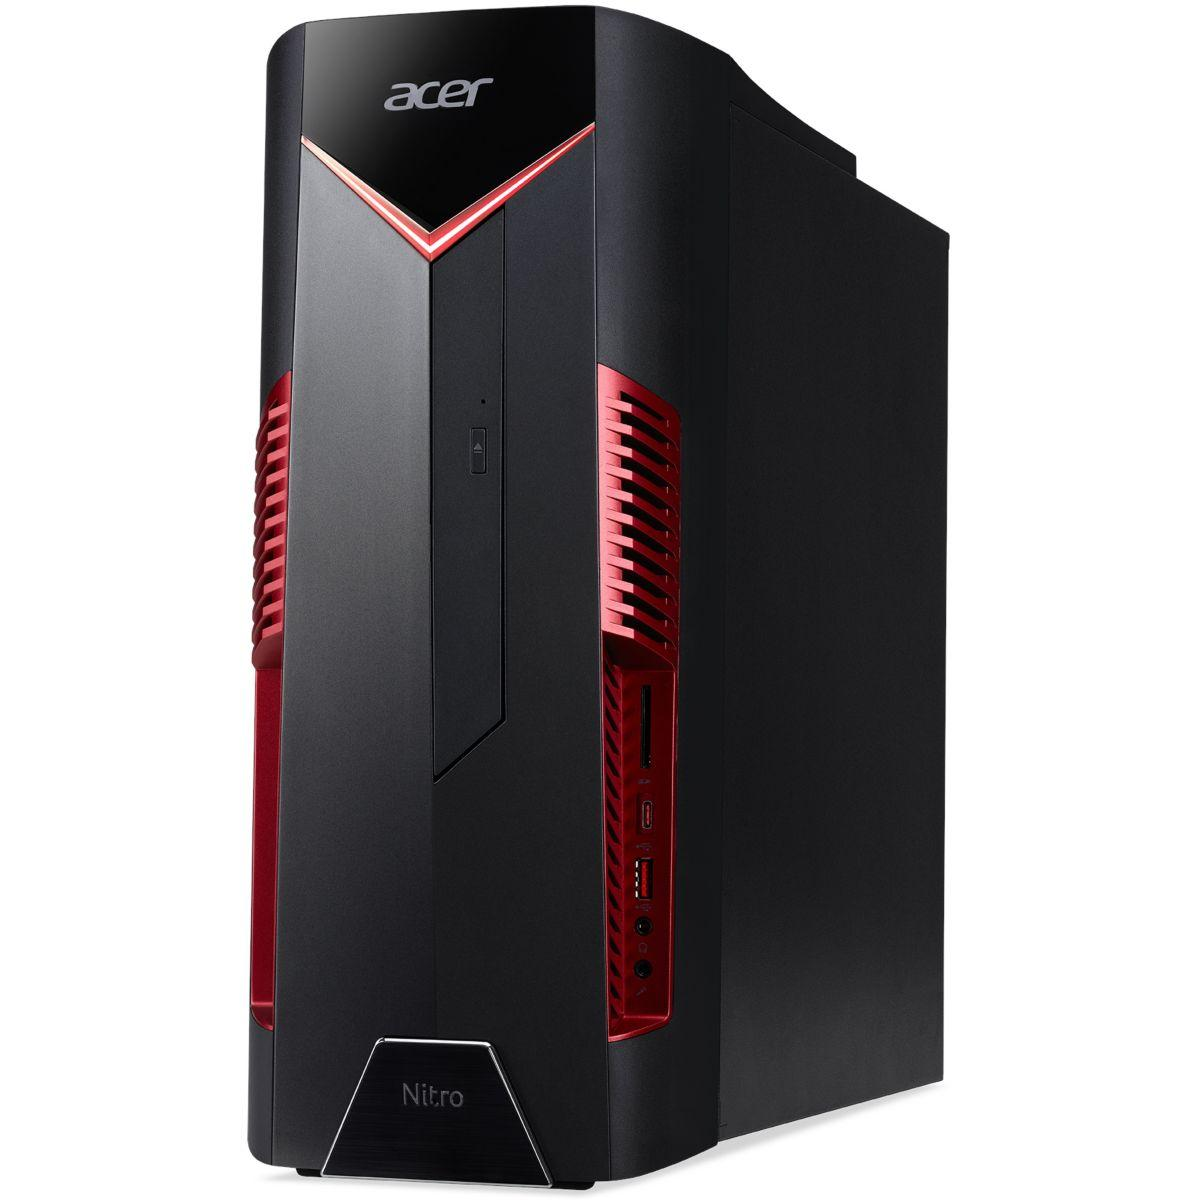 Pc gamer acer nitro n50-600-036 (photo)